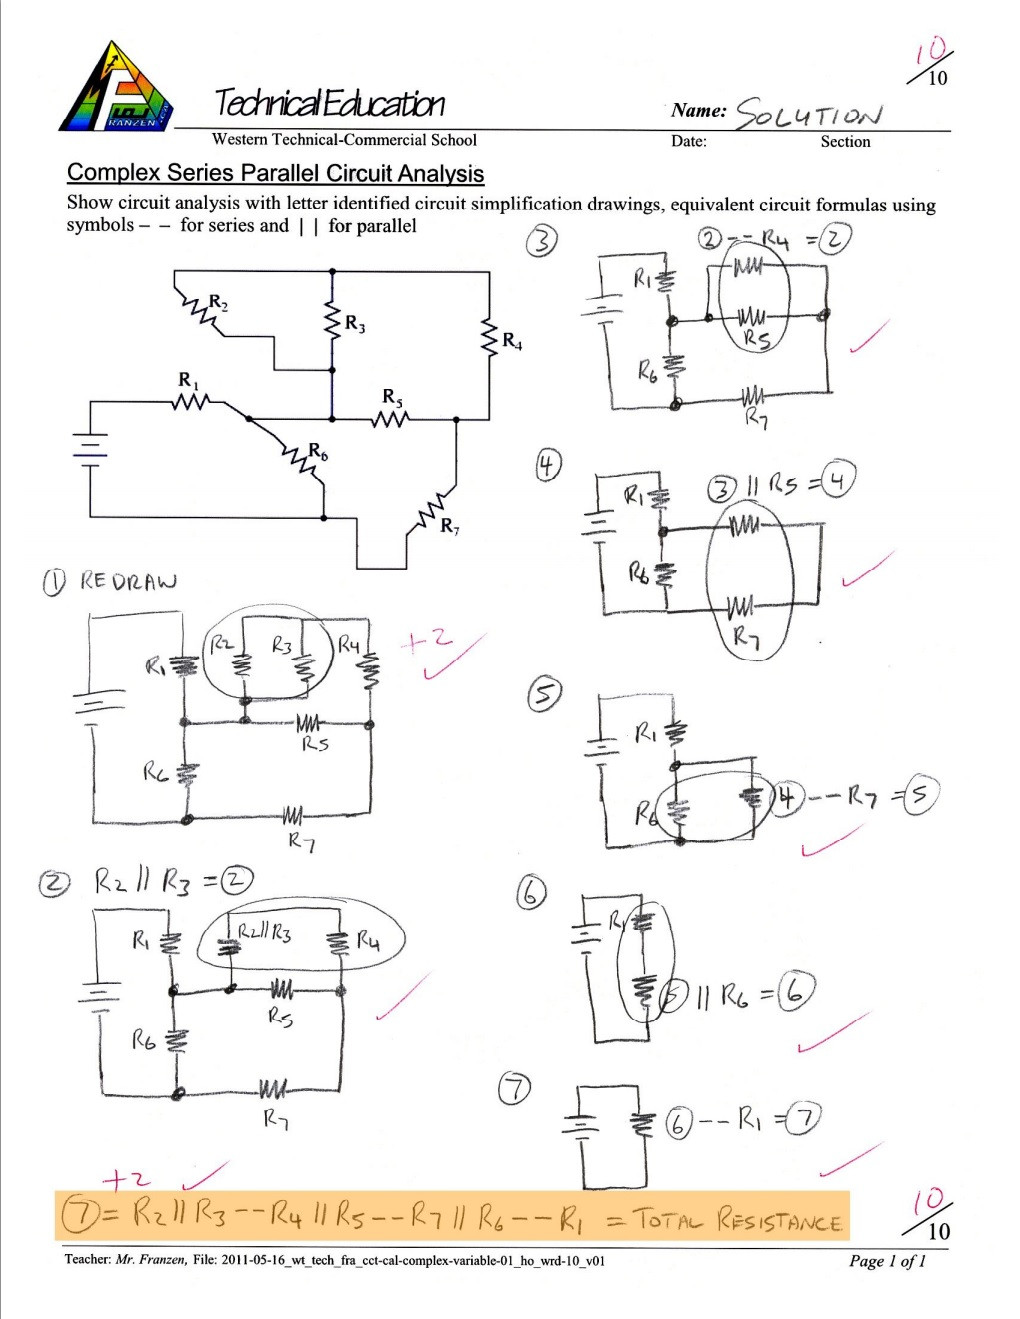 Combination Circuits Worksheet with Answers Unit 1 Puter Engineering Technology Robotics and